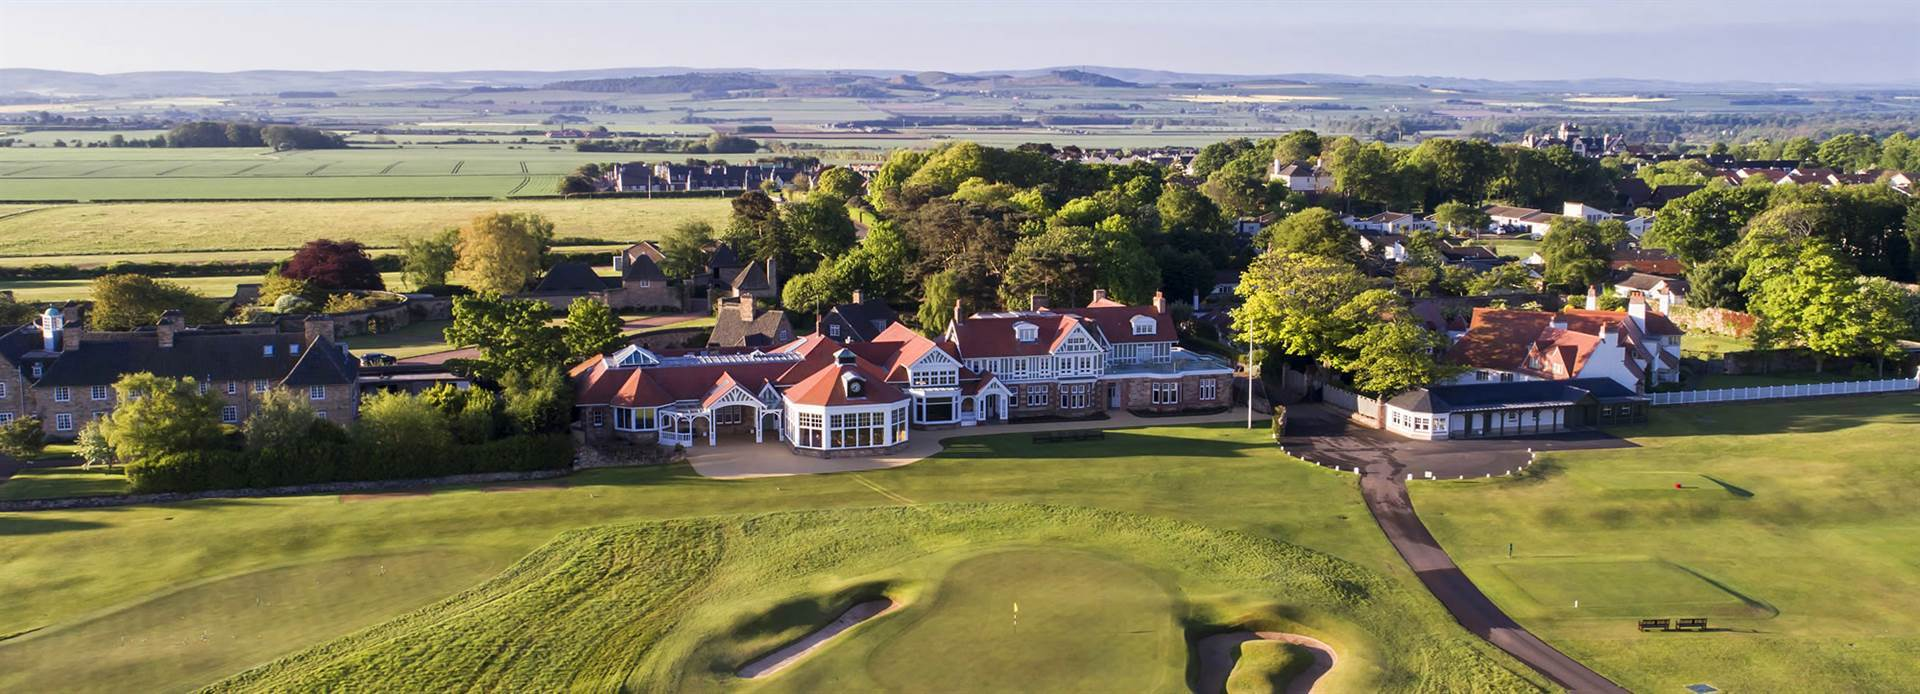 Muirfield, East Lothian